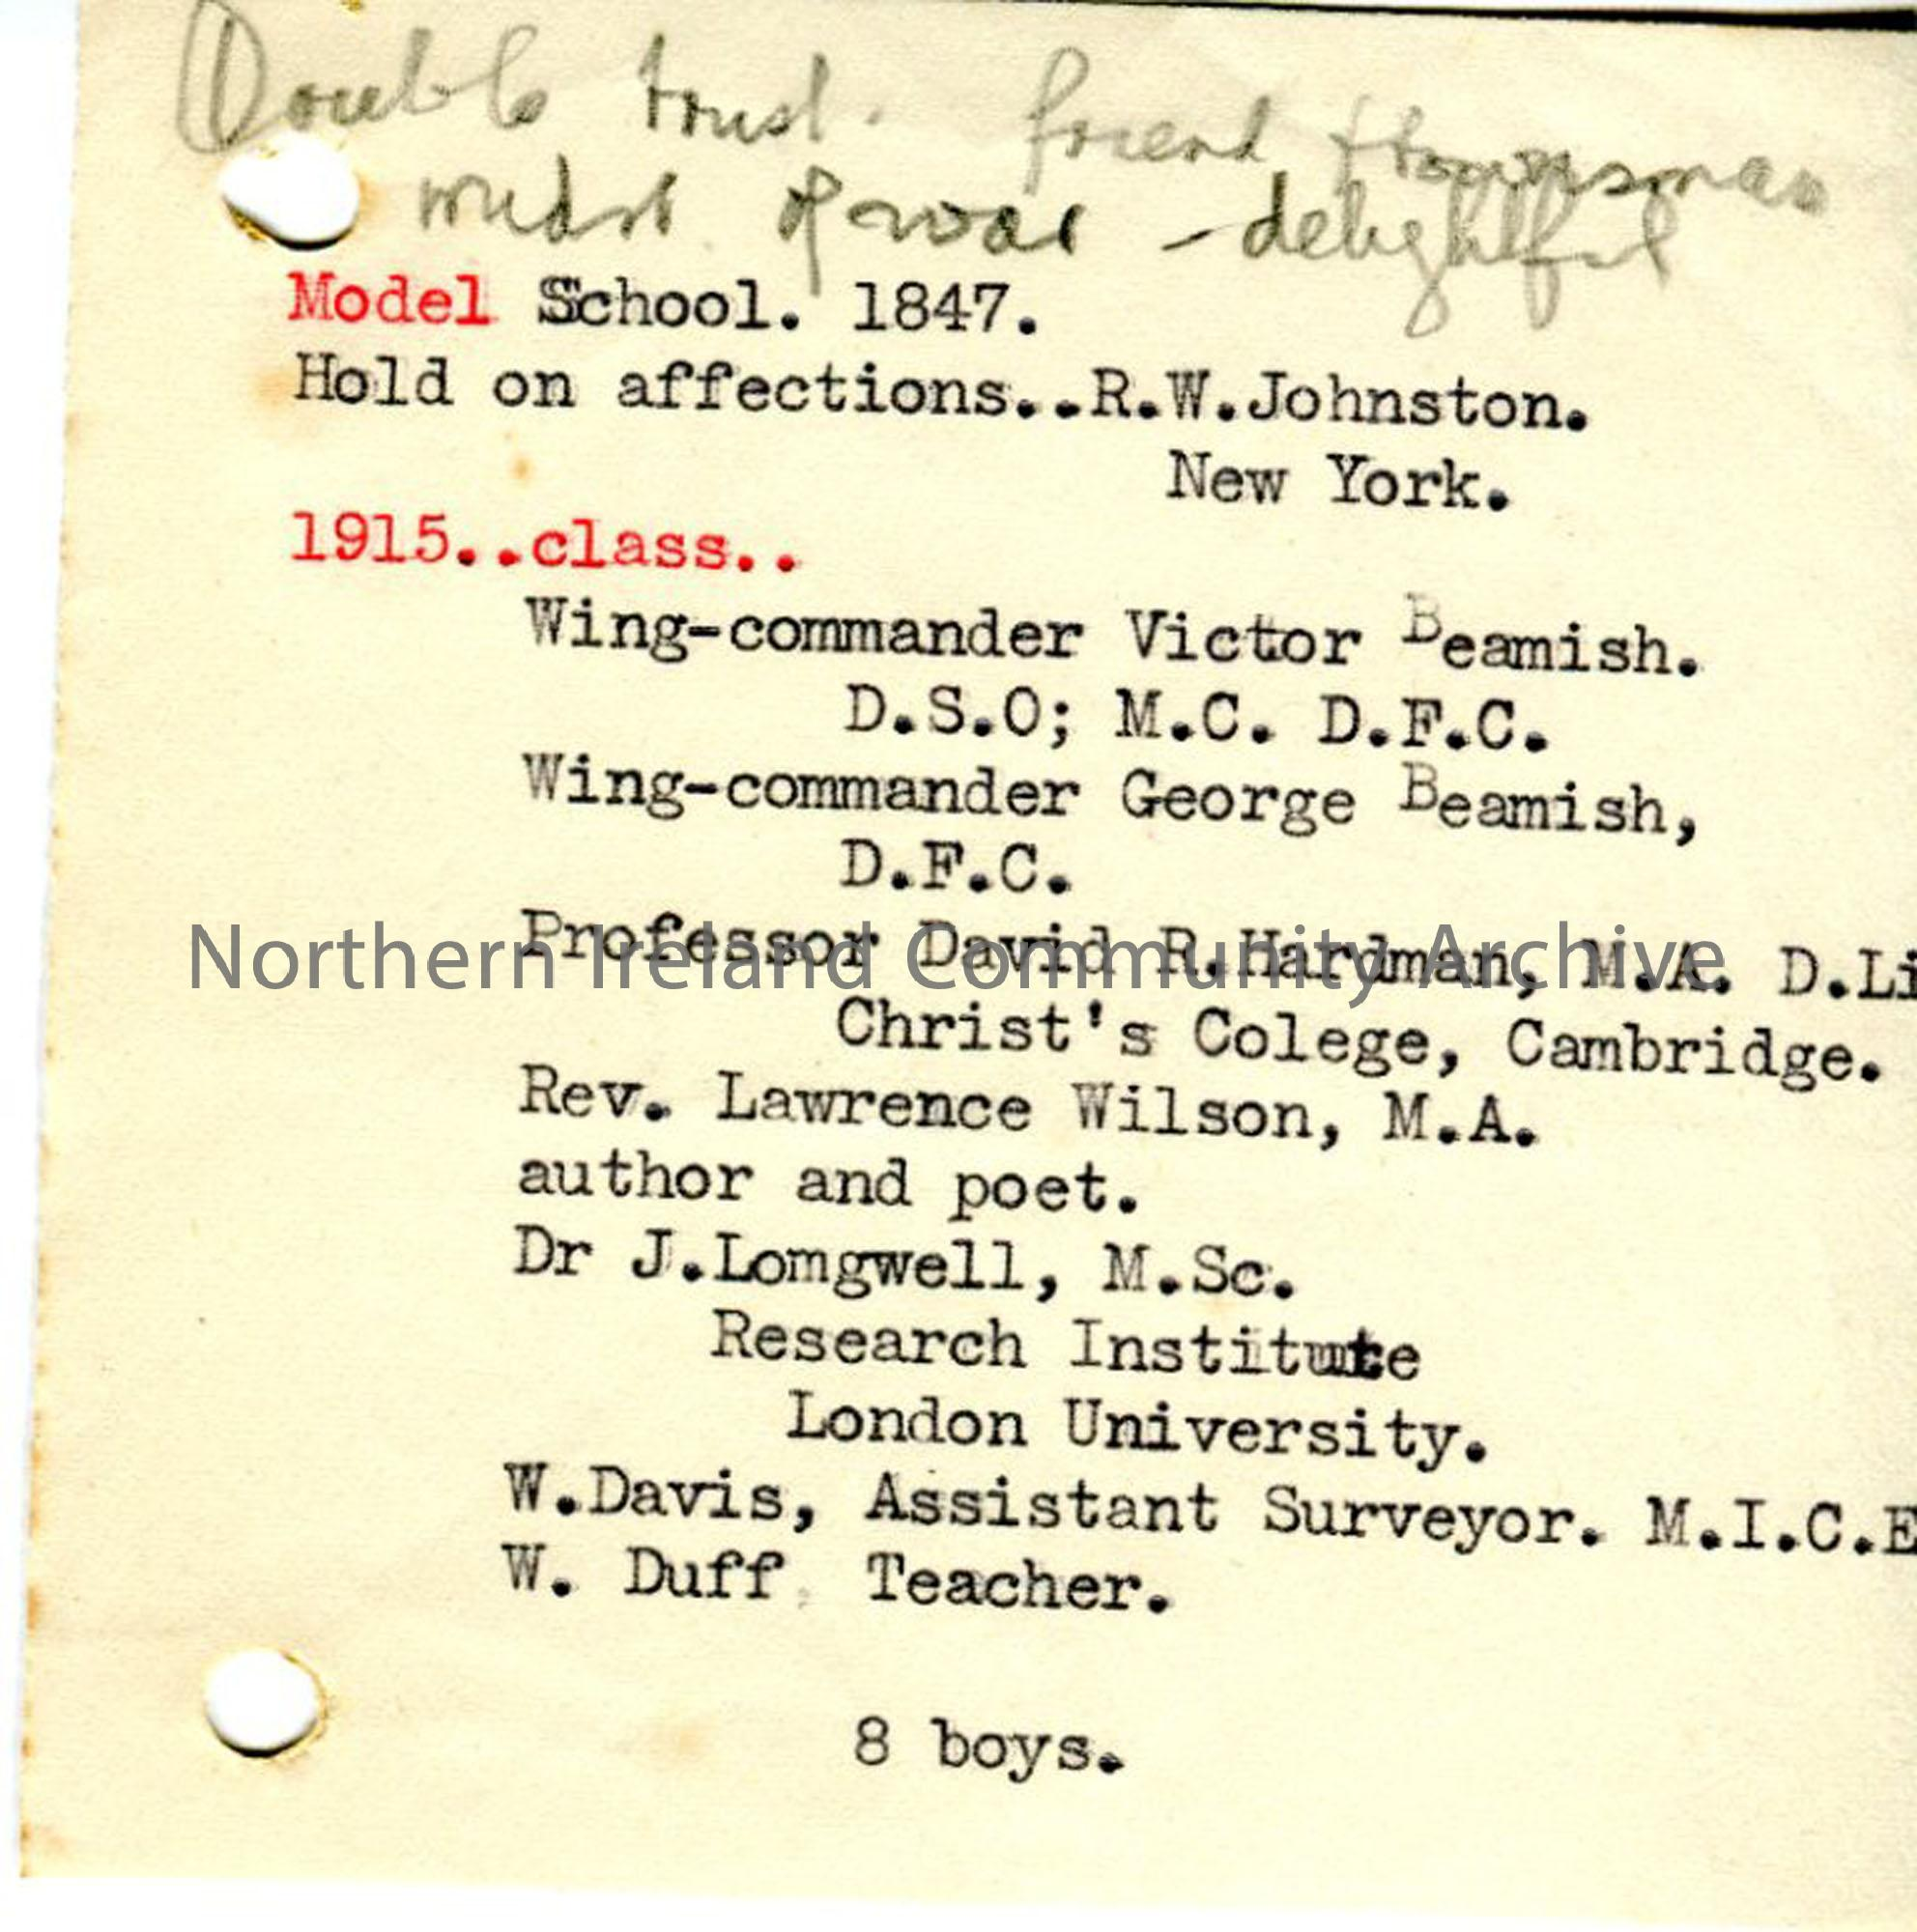 Typed notes- '1915 ..class' military personnel